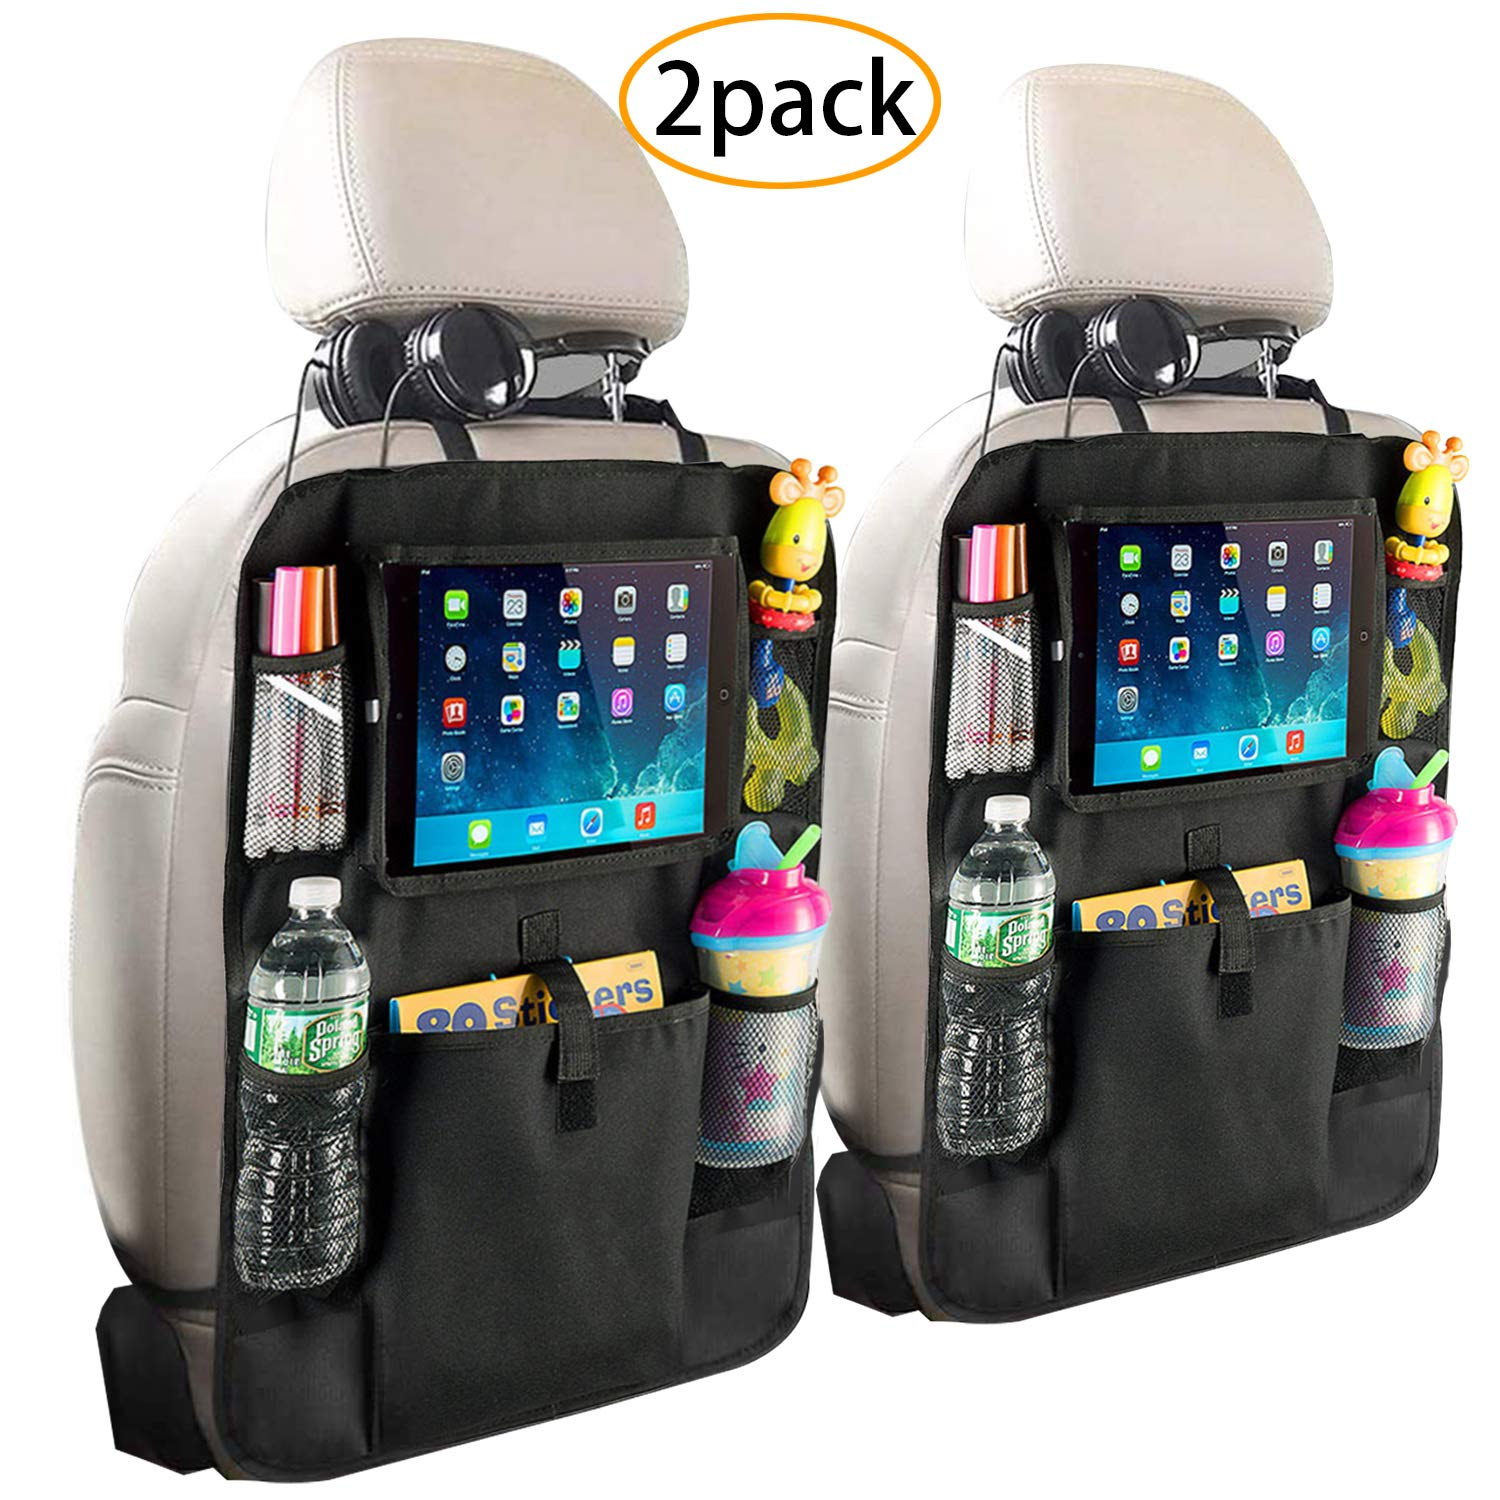 Fullsexy 2 Pack Car Back Seat Organizer with Touch Screen Tablet Holder, Waterproof Kick Mats Backseat Protector, NO Bad Smell (24'' X 16'') by Fullsexy